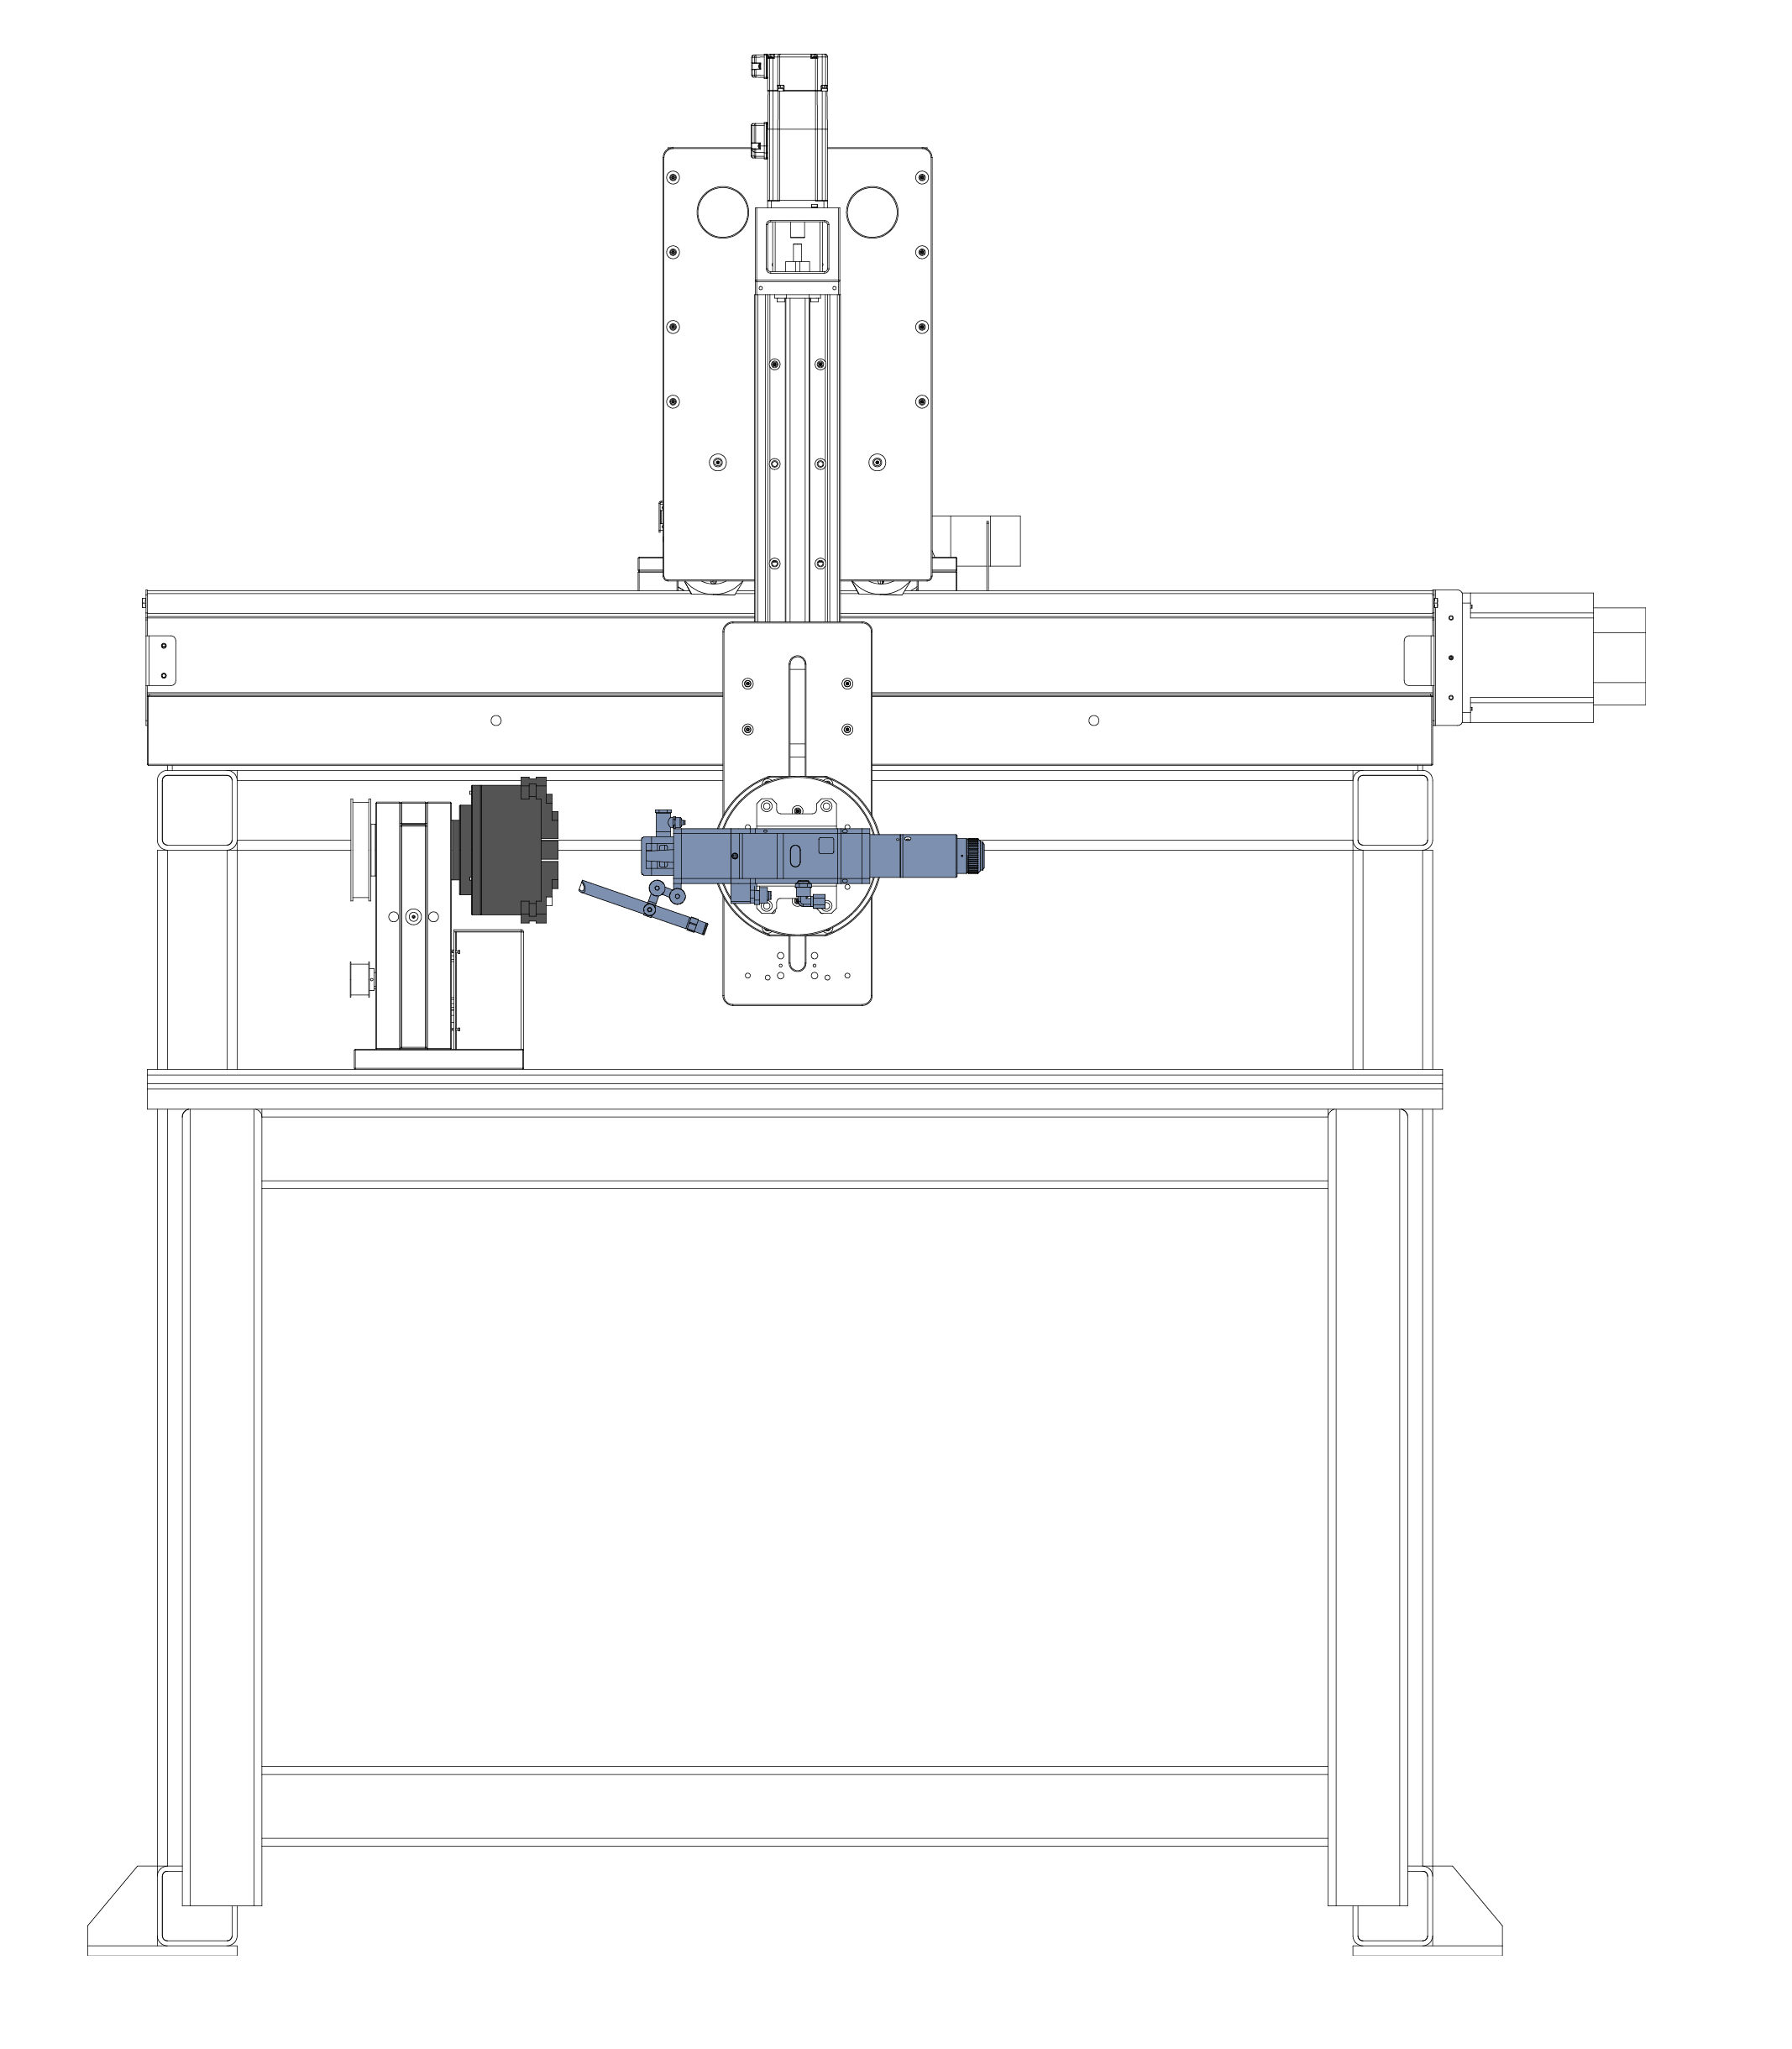 Products Laser Welding Diagram Machine Tools